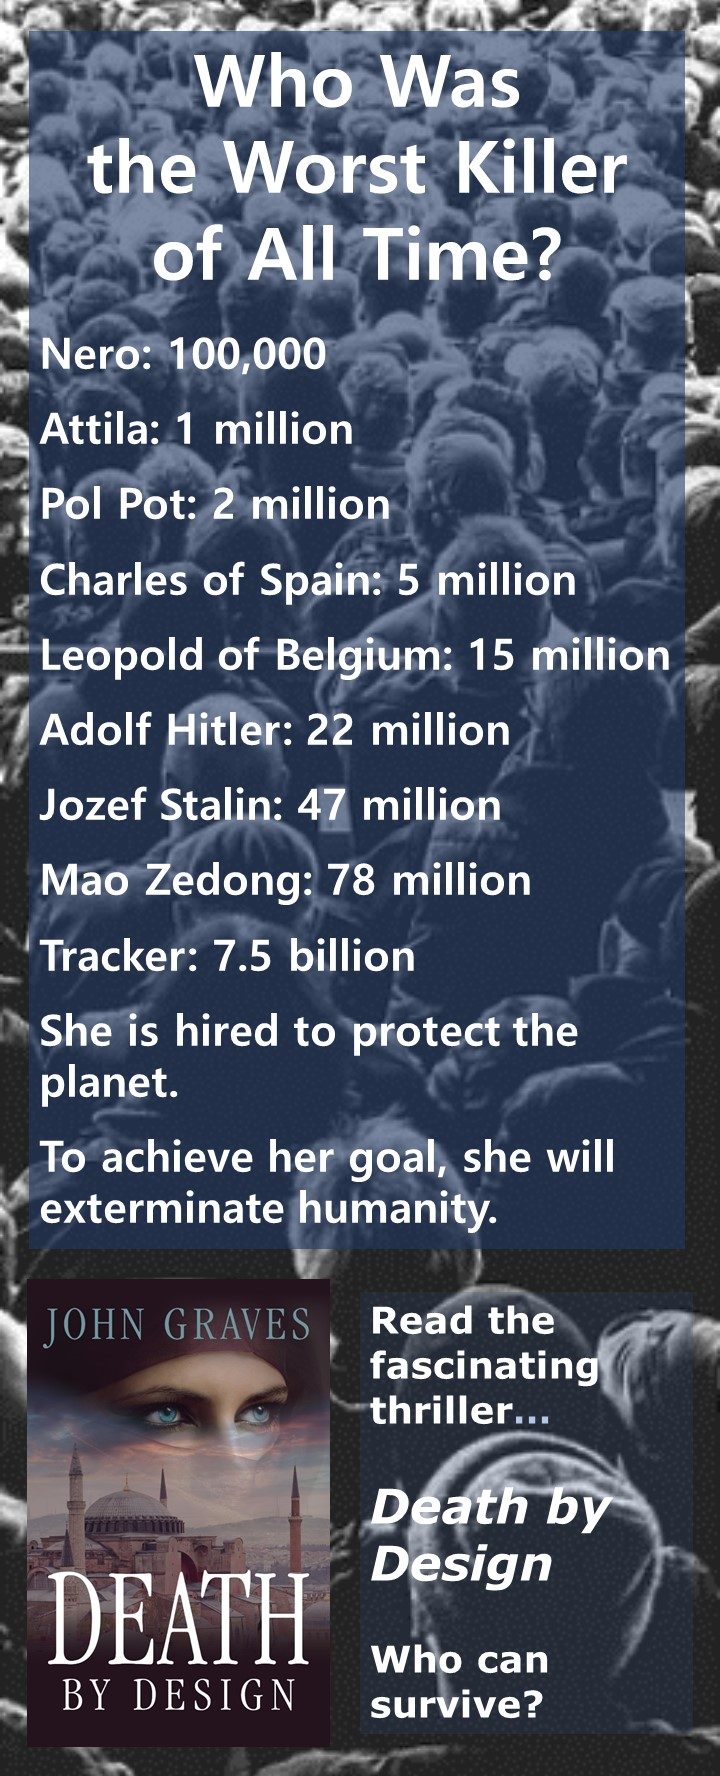 Worst Killer of All Time - Tracker: 7.5 billion. She is hired to protect the planet. To achieve her goal, she will exterminate humanity.